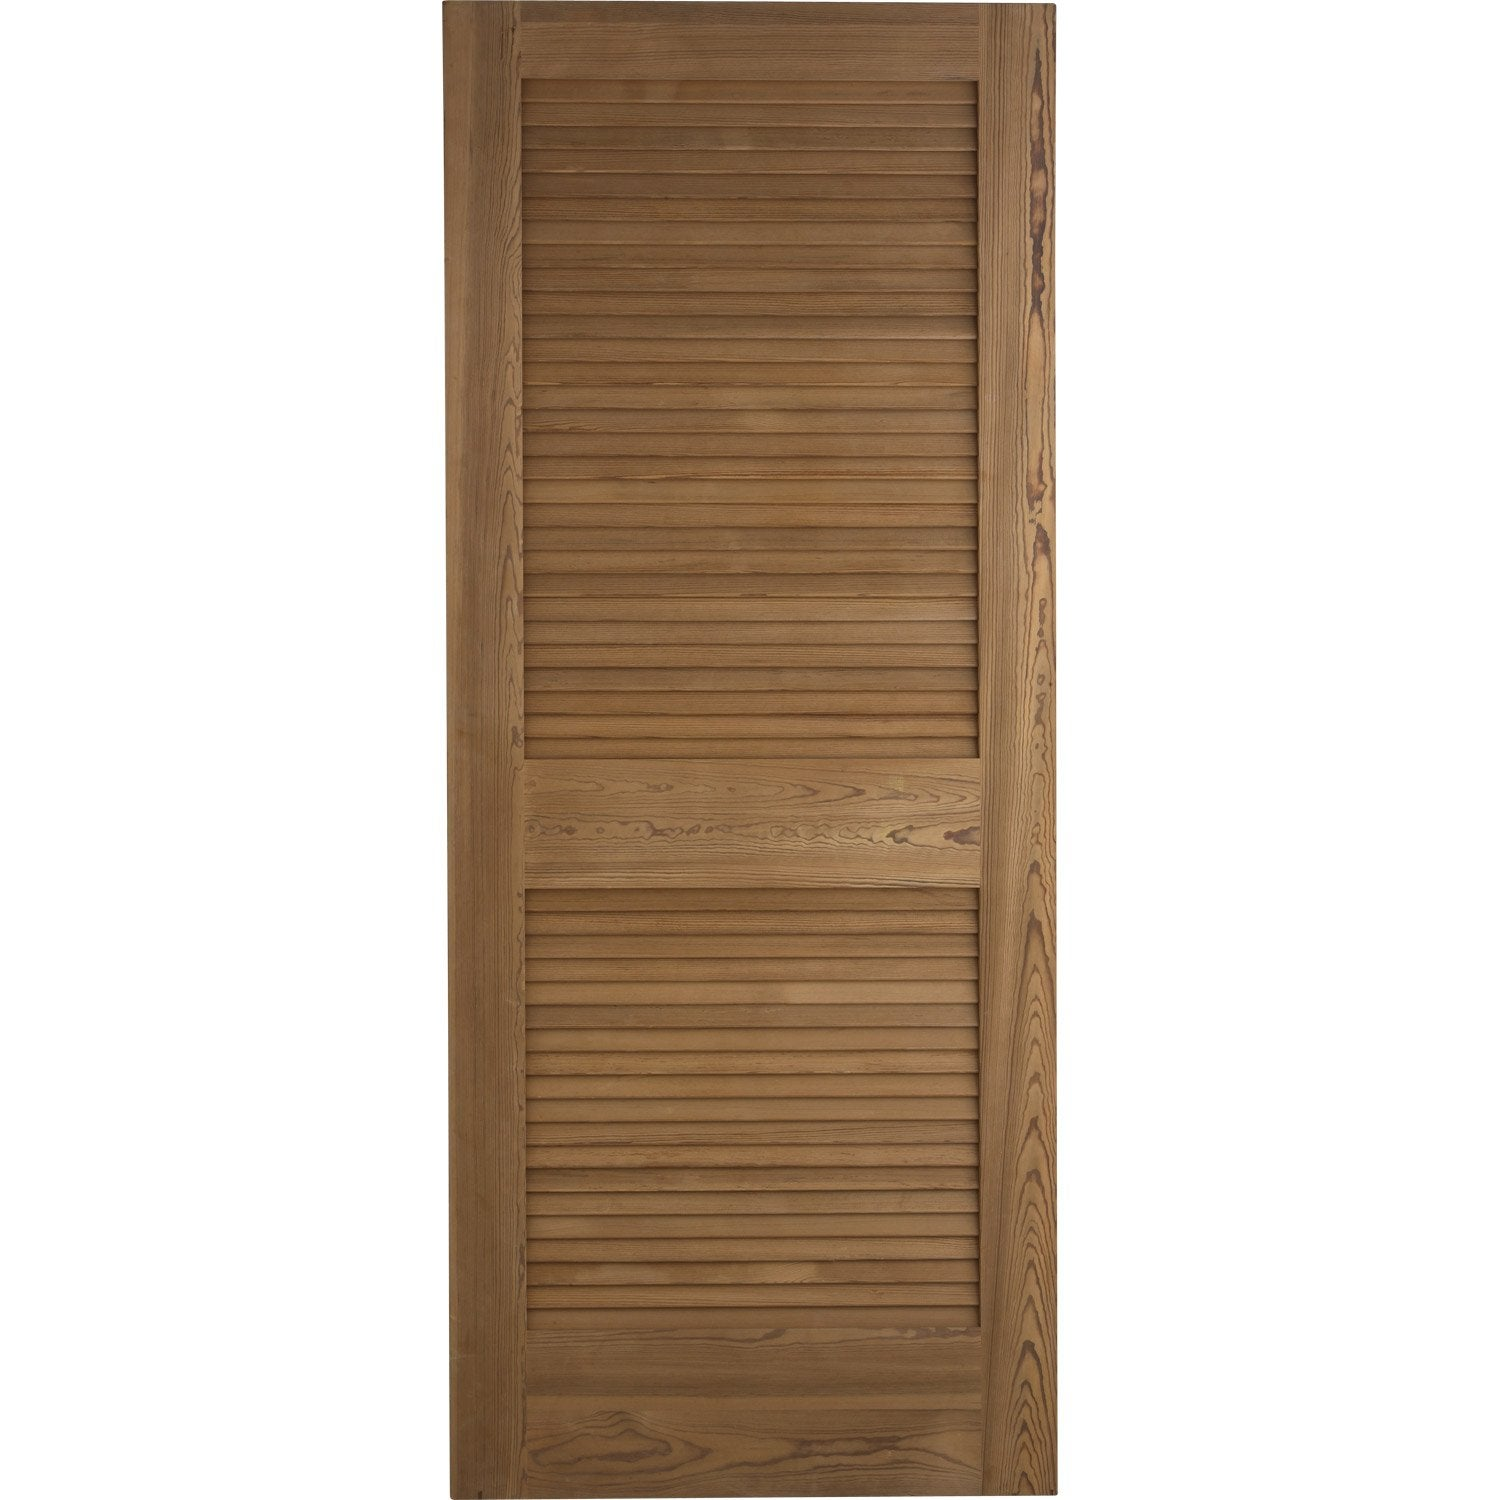 Porte coulissante pin plaqu marron java artens 204 x 73 for Porte de chambre leroy merlin